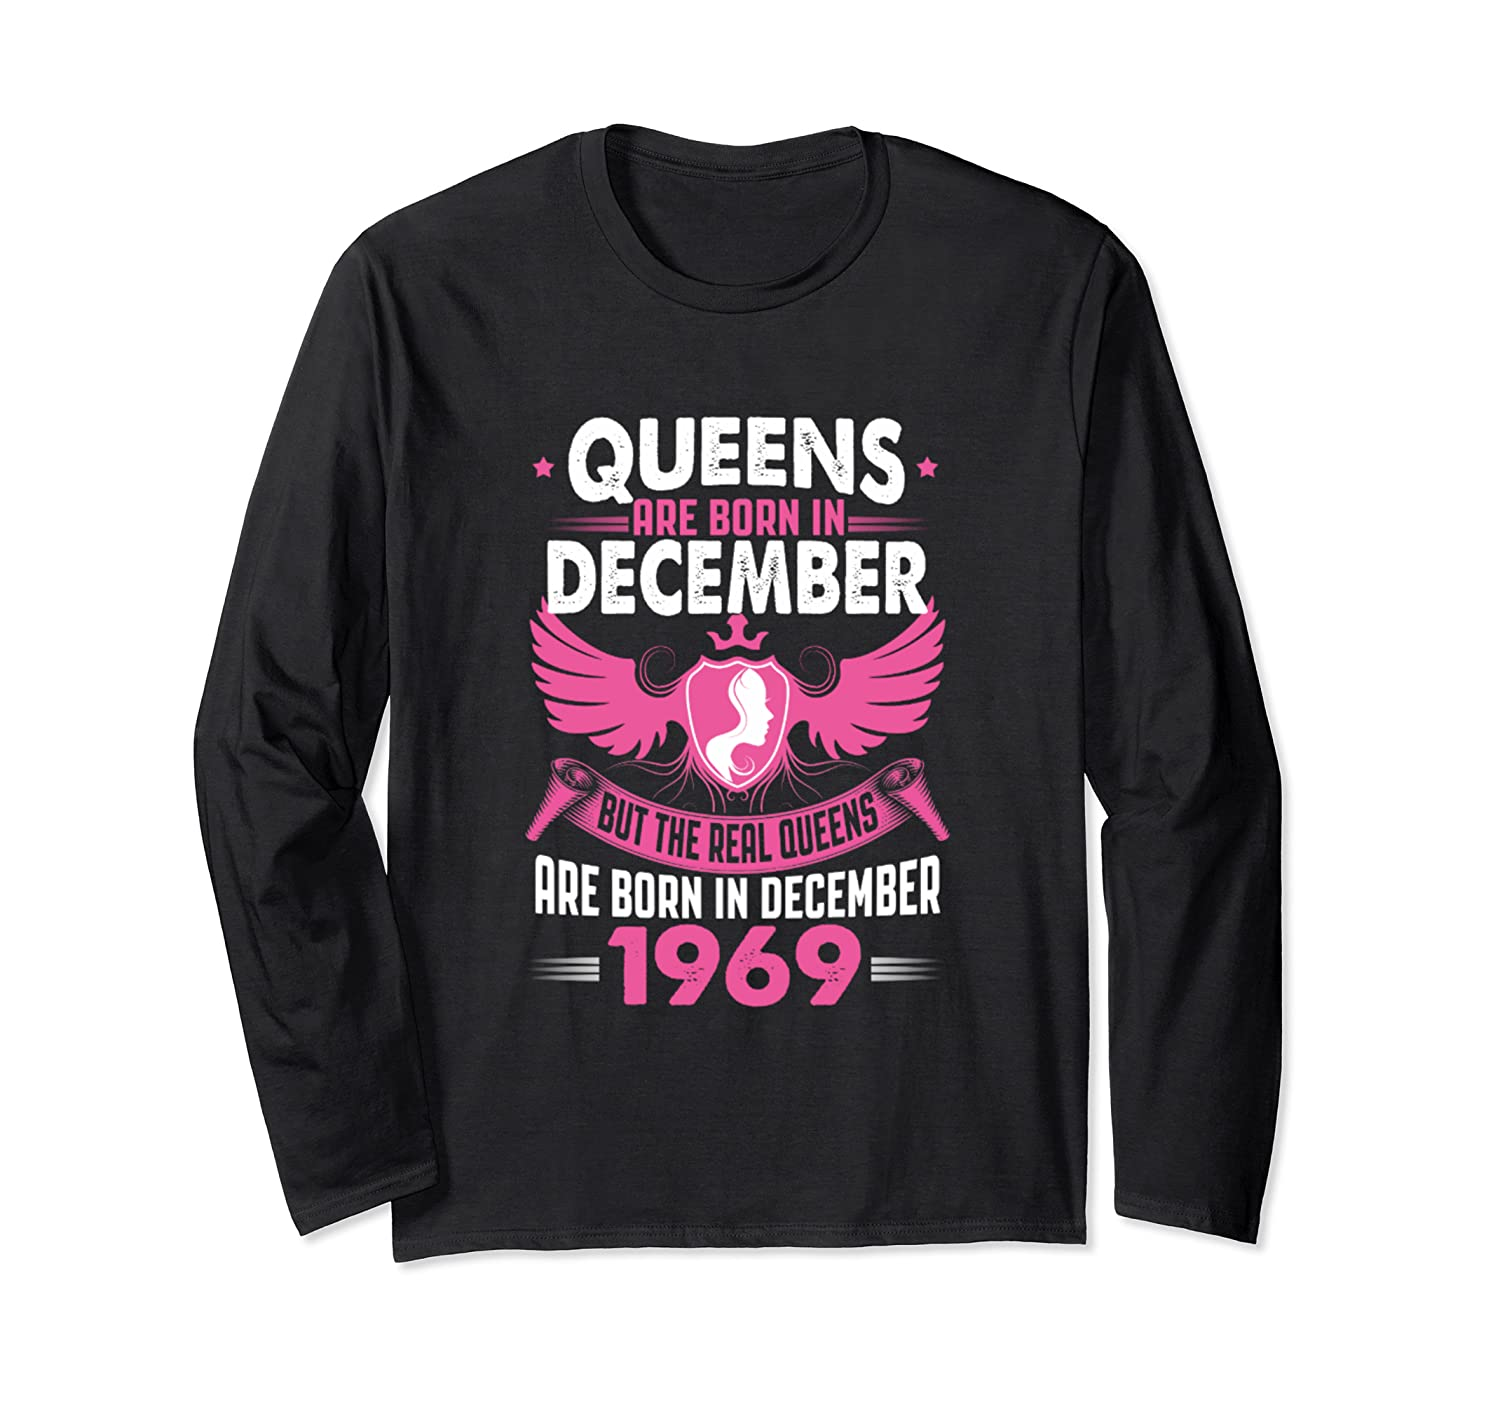 Real Queens Are Born In December 1969 Long Sleeve T-Shirt